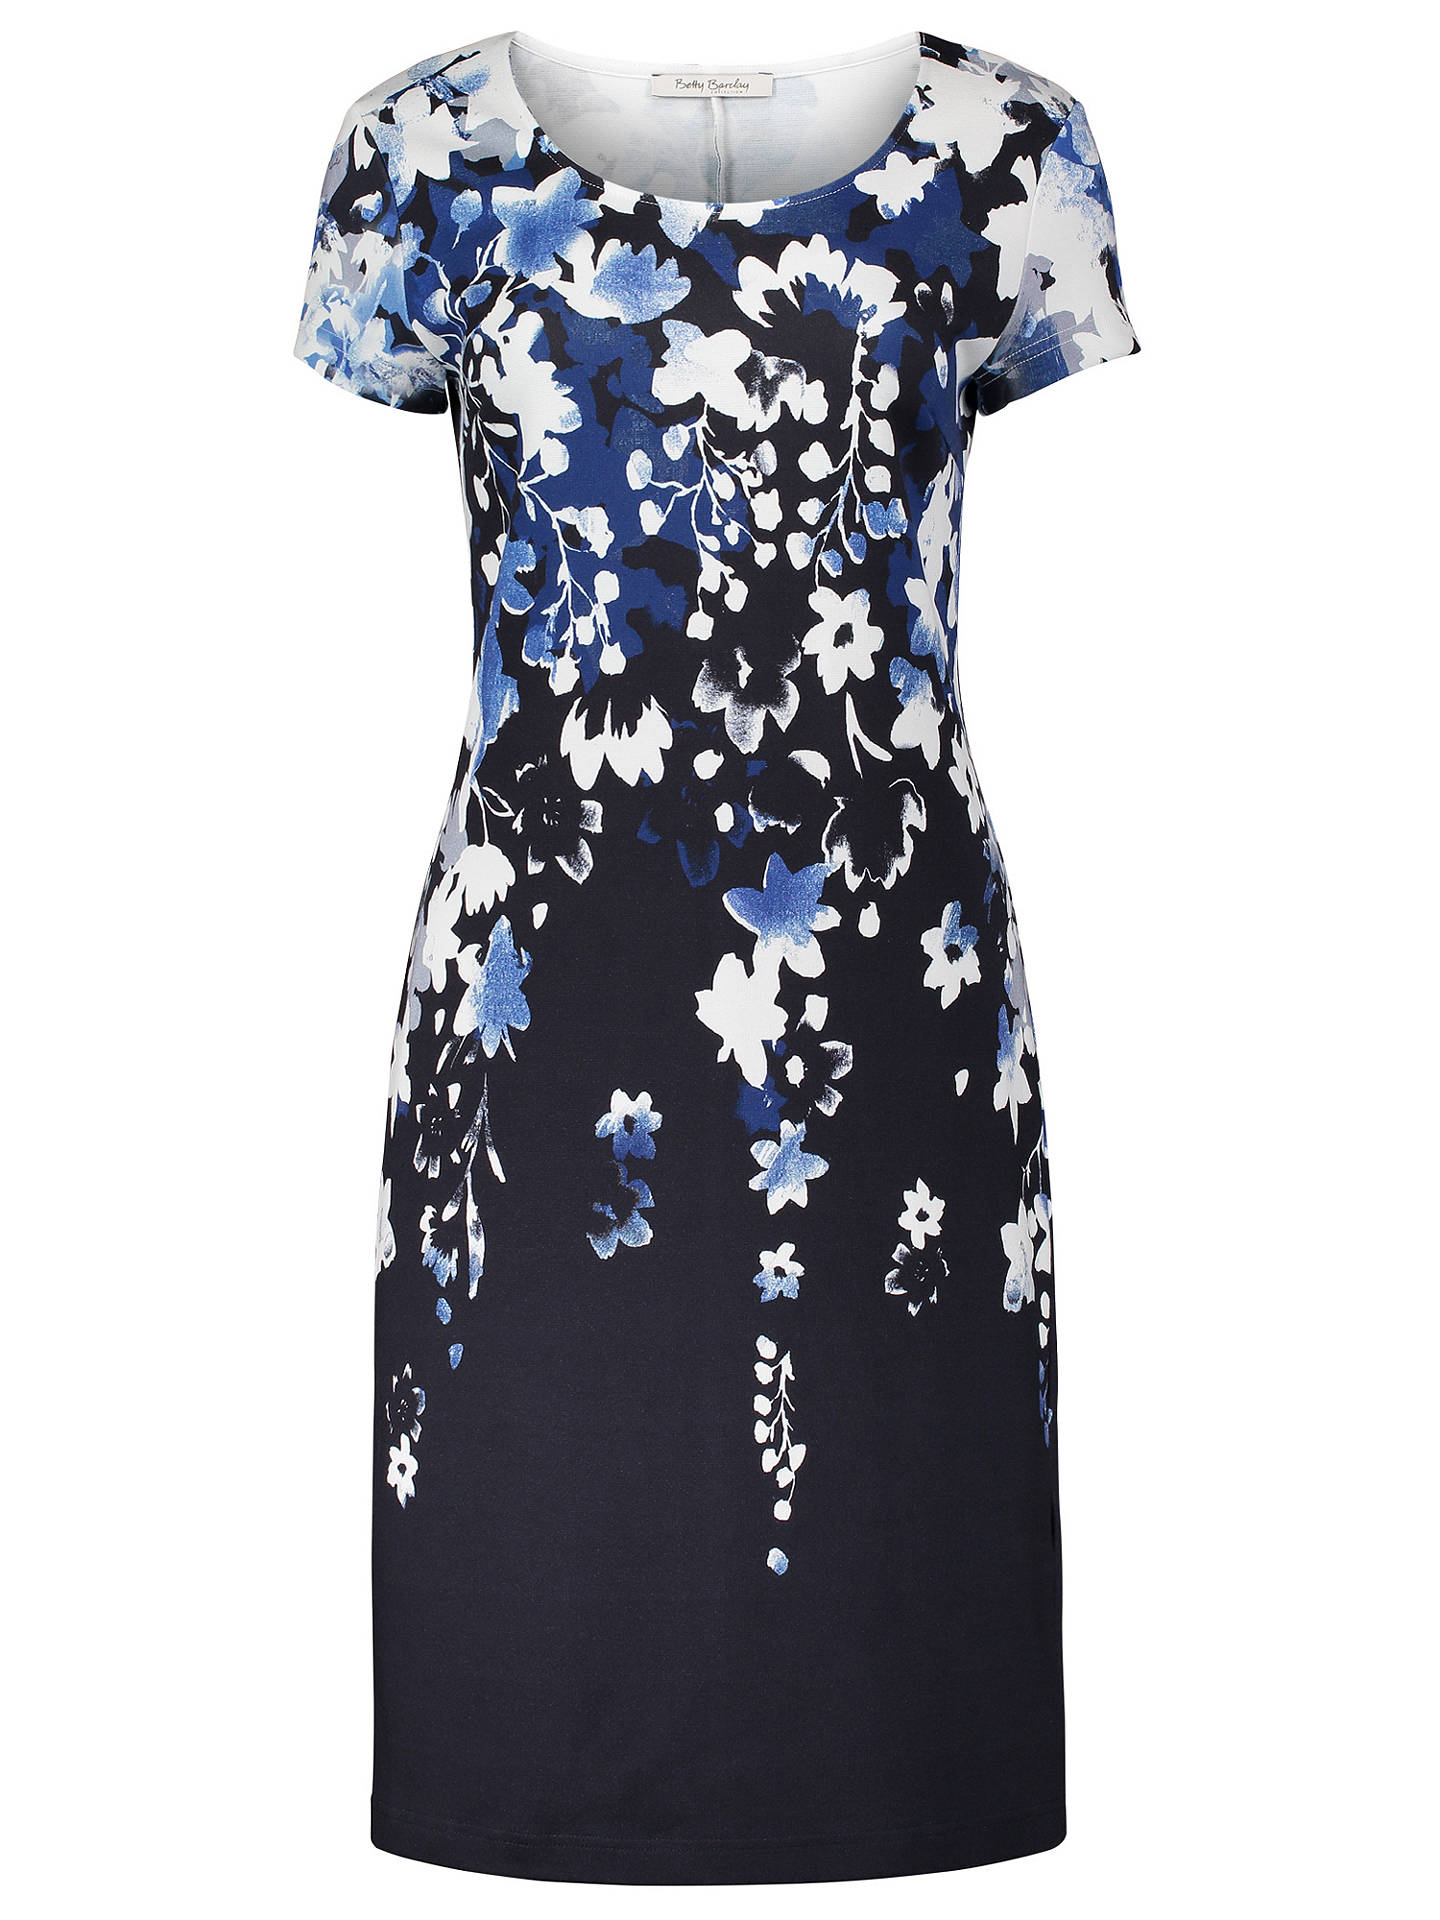 BuyBetty Barclay Floral Print Dress, Blue/Cream, 10 Online at johnlewis.com